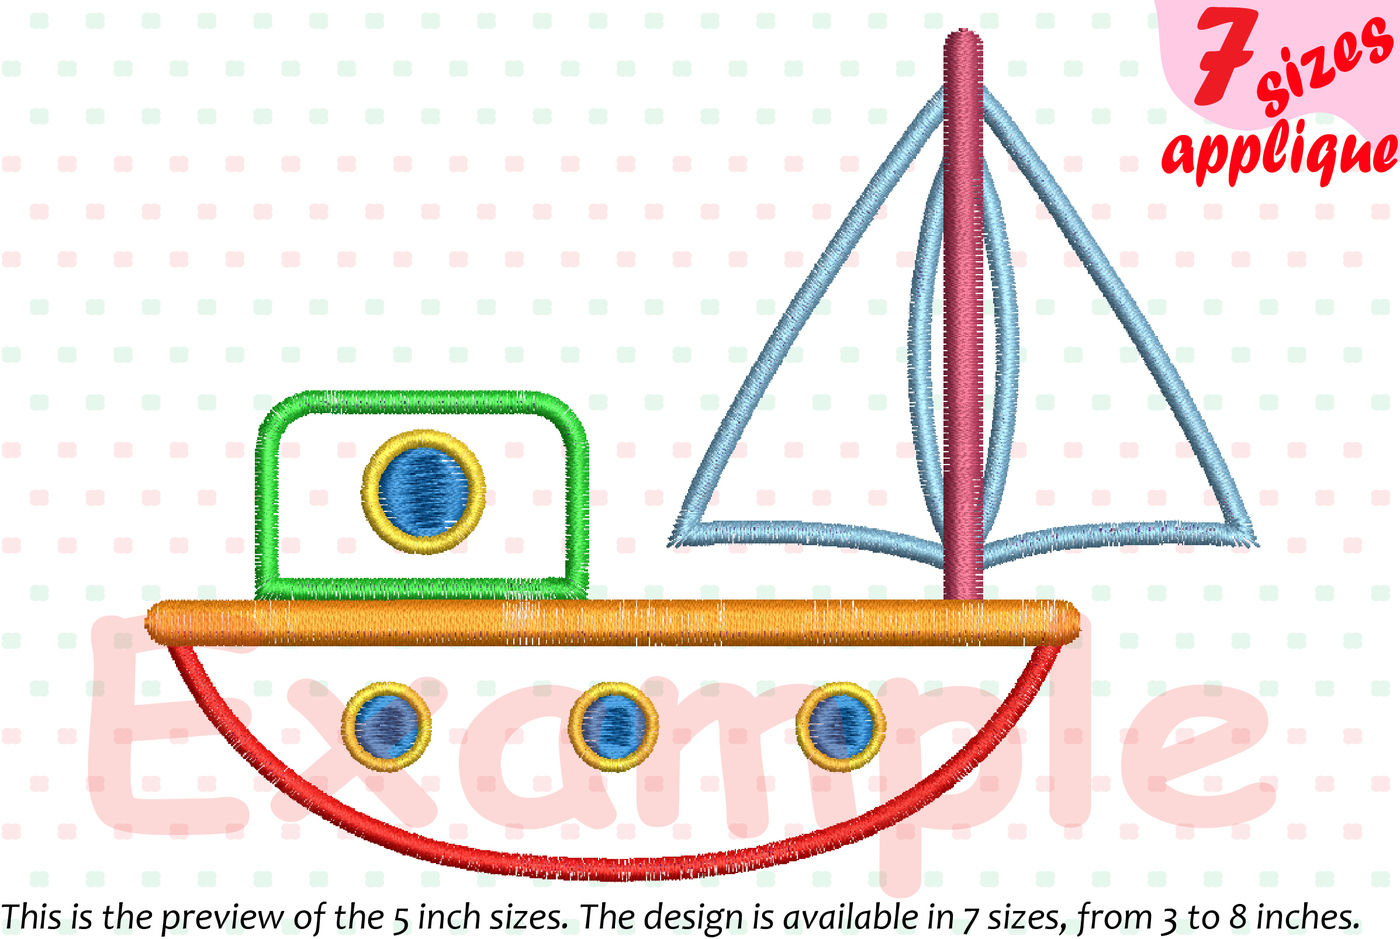 Sailboat Toy Applique Designs For Embroidery Boat Toys Yacht Ship